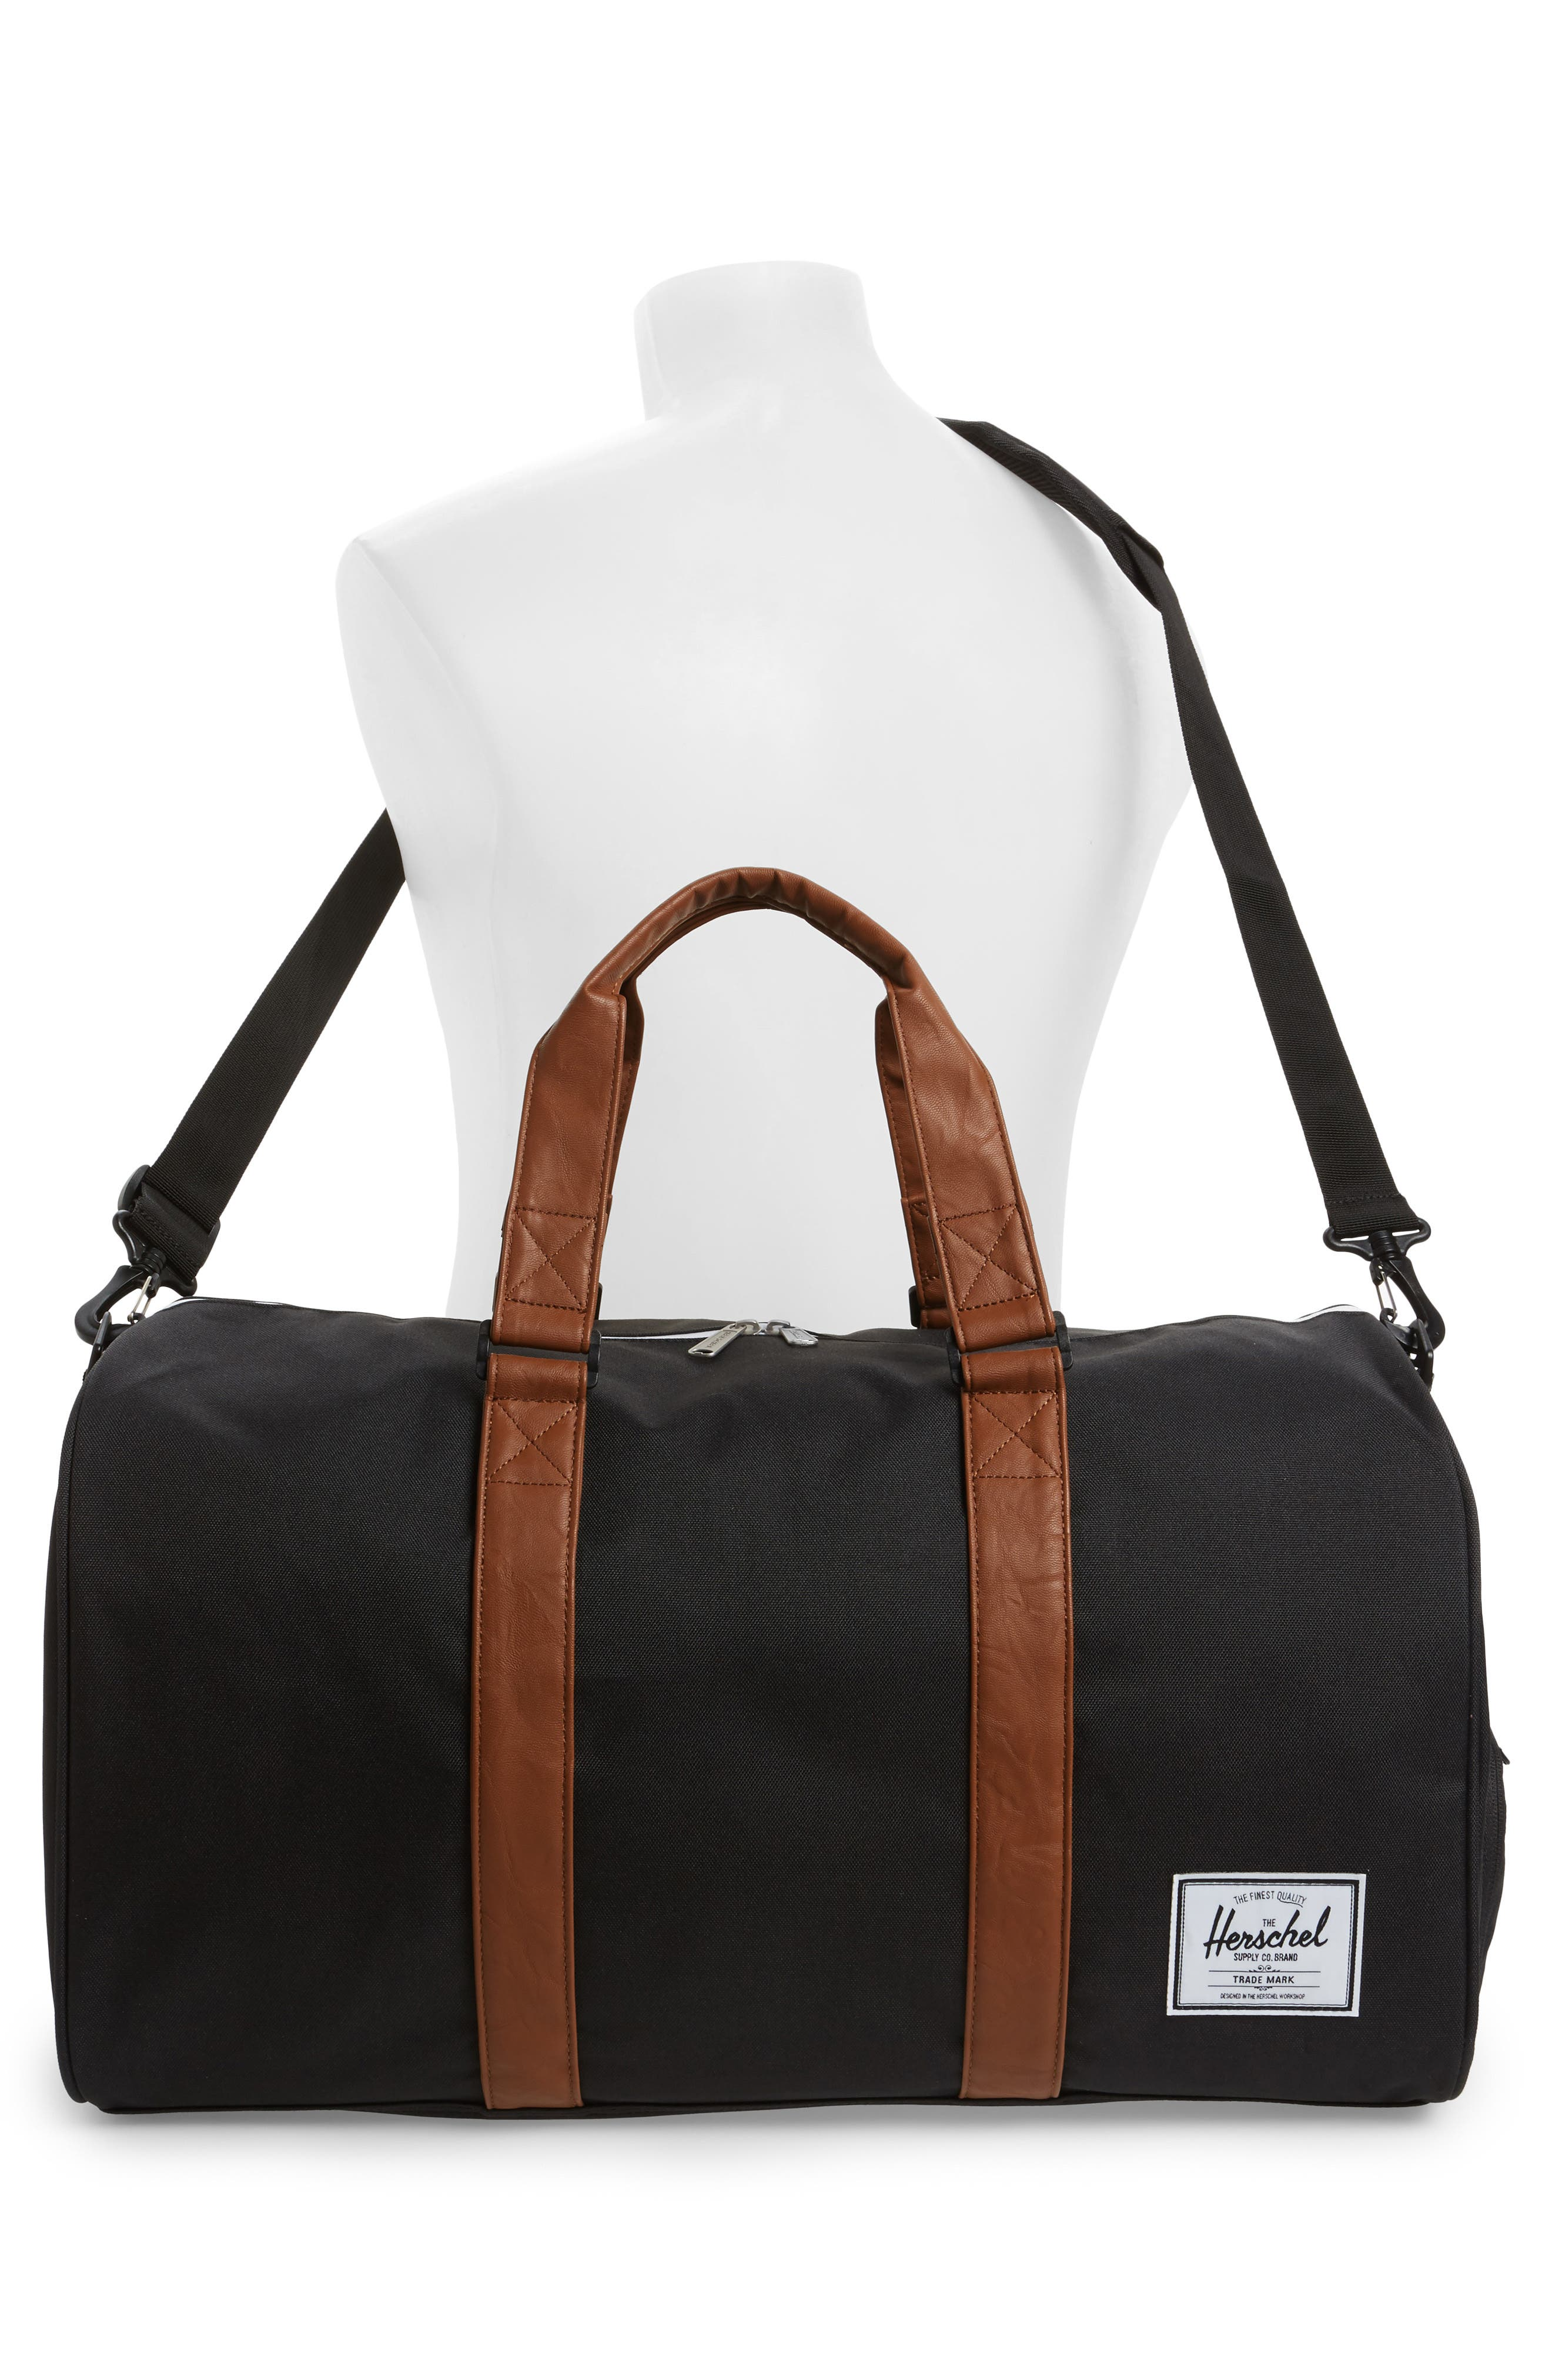 'Novel' Duffel Bag,                             Alternate thumbnail 2, color,                             BLACK/ TAN